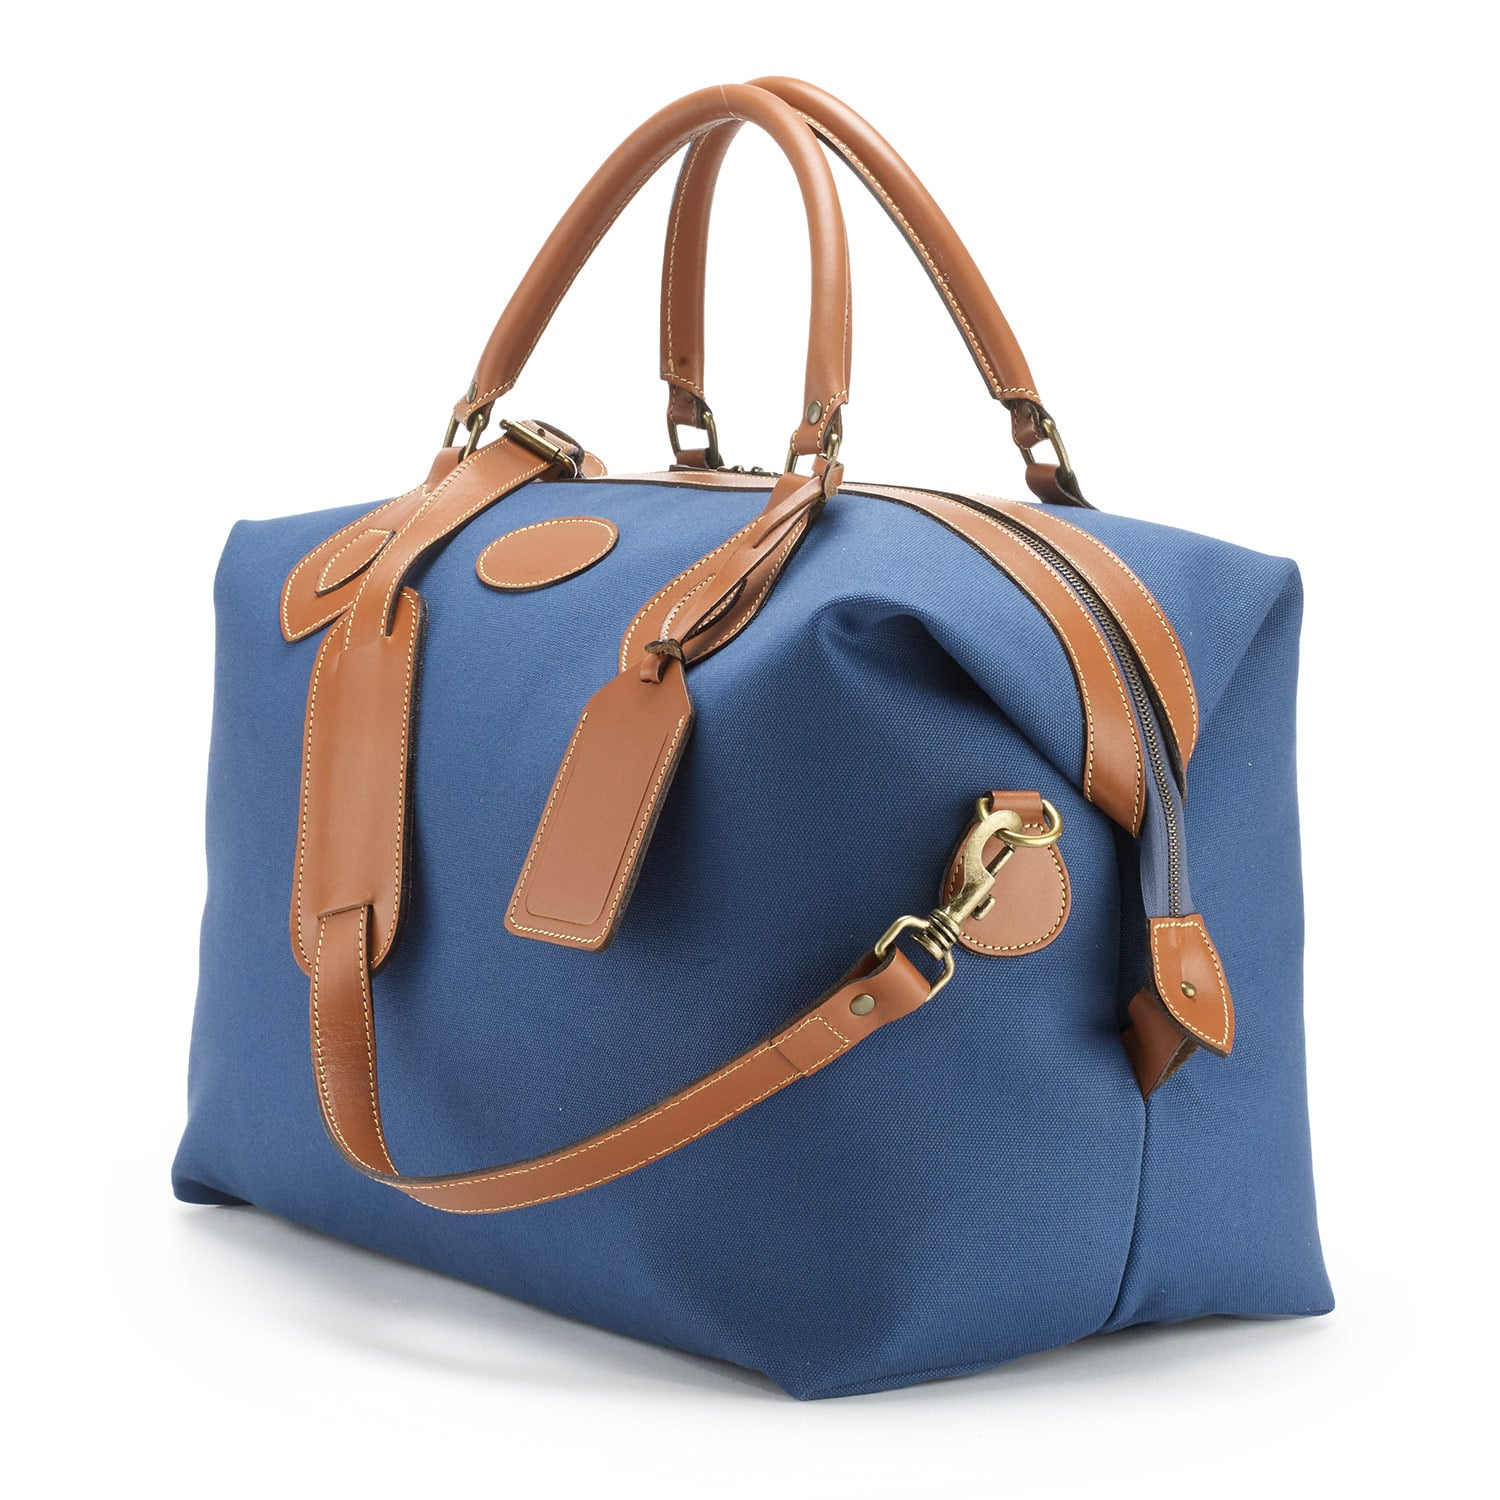 Tusting Explorer Tasche, medium, denim blue 3